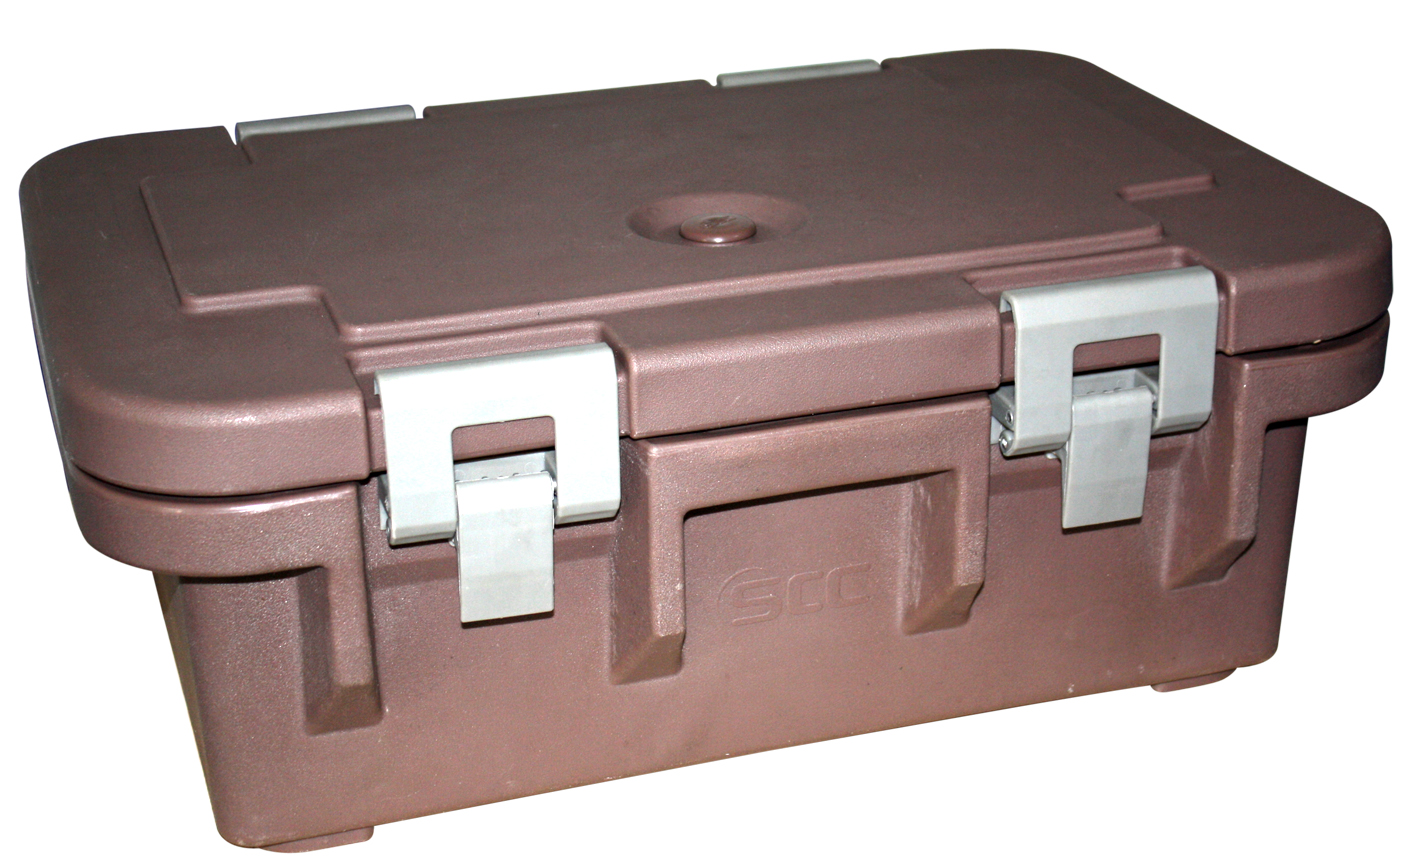 Coolers|Ice Chest|ATV Box|Transit Case|Insulated Container